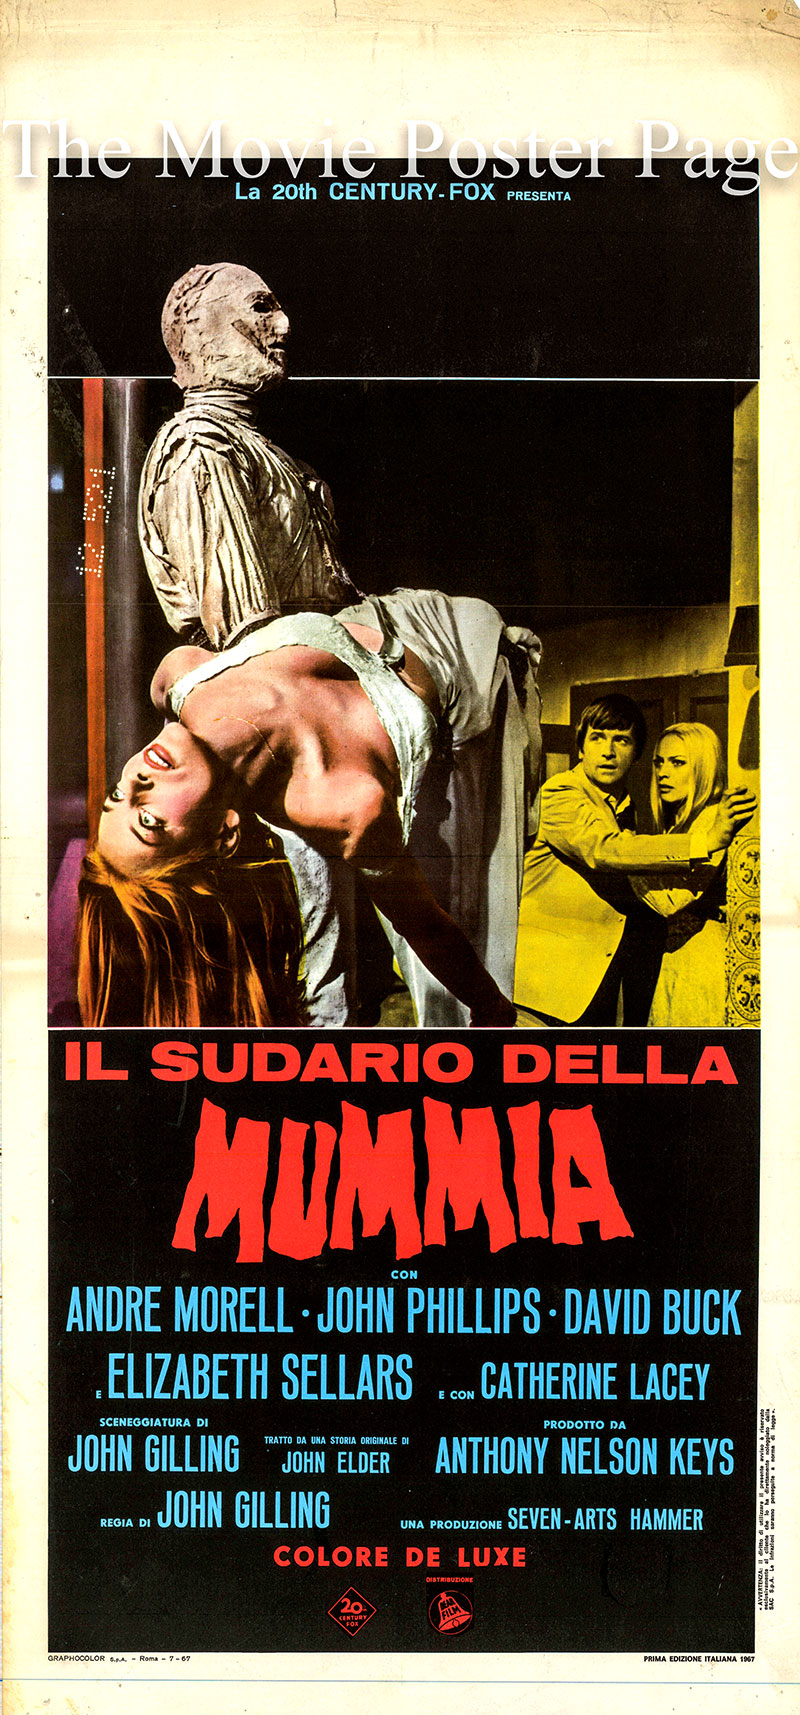 Pictured is an Italian locandina poster for the 1967 John Gilling film The Mummy's Shroud starring André Morell as Sir Basil Walden.